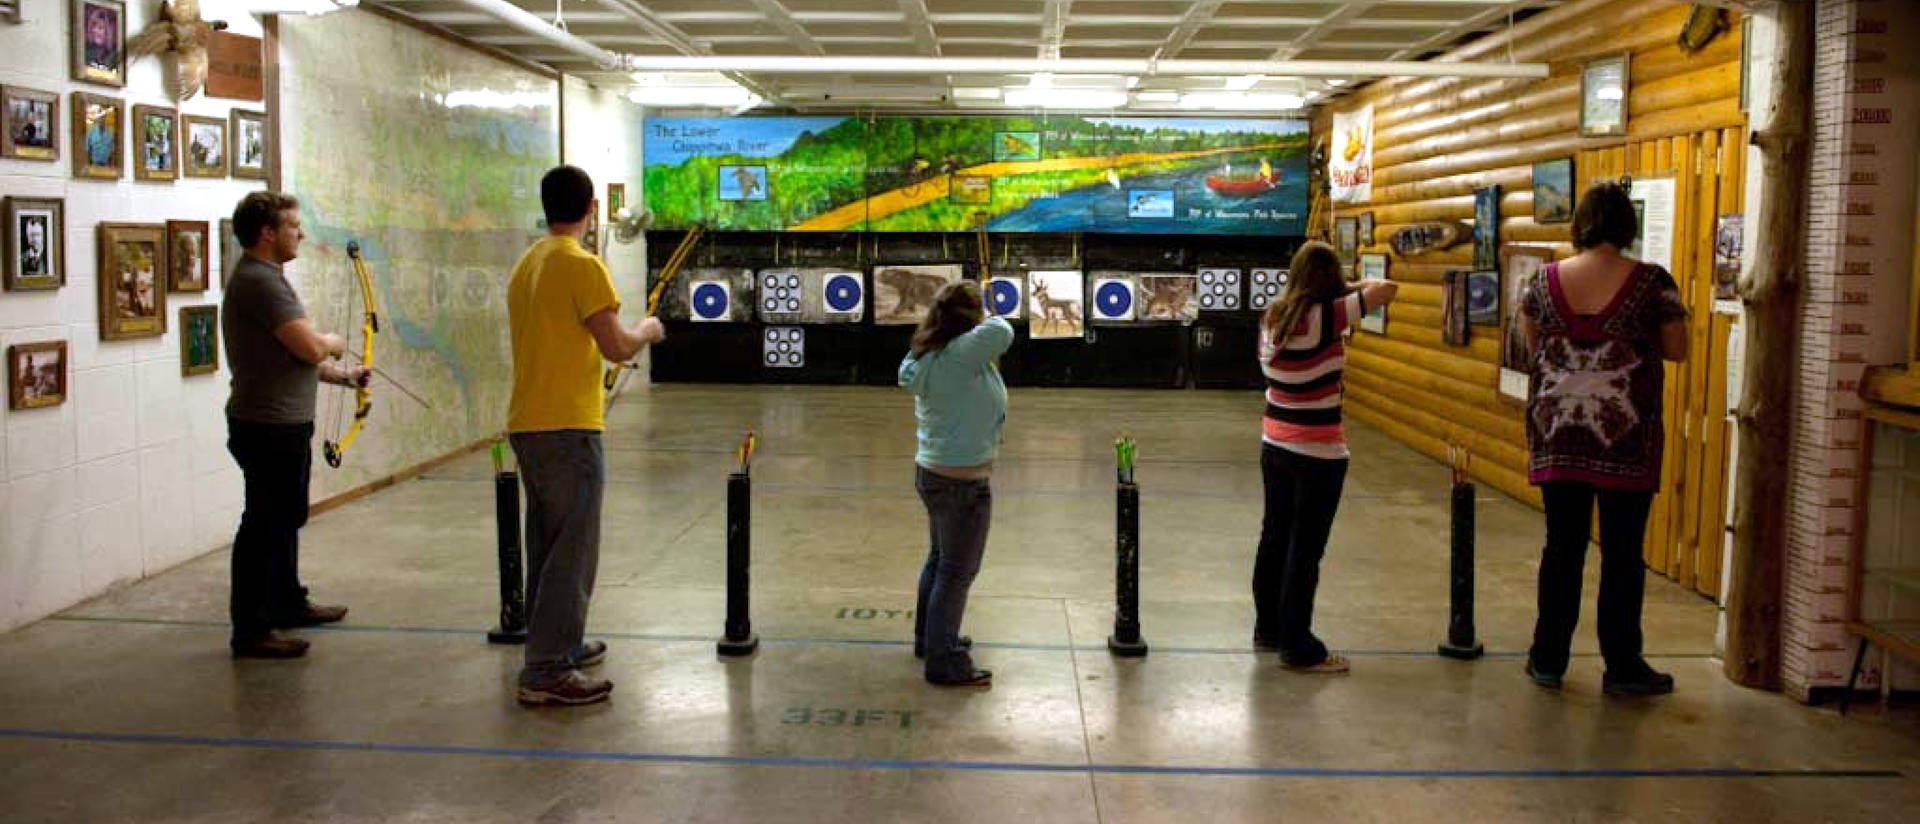 Five students lined up in archery range